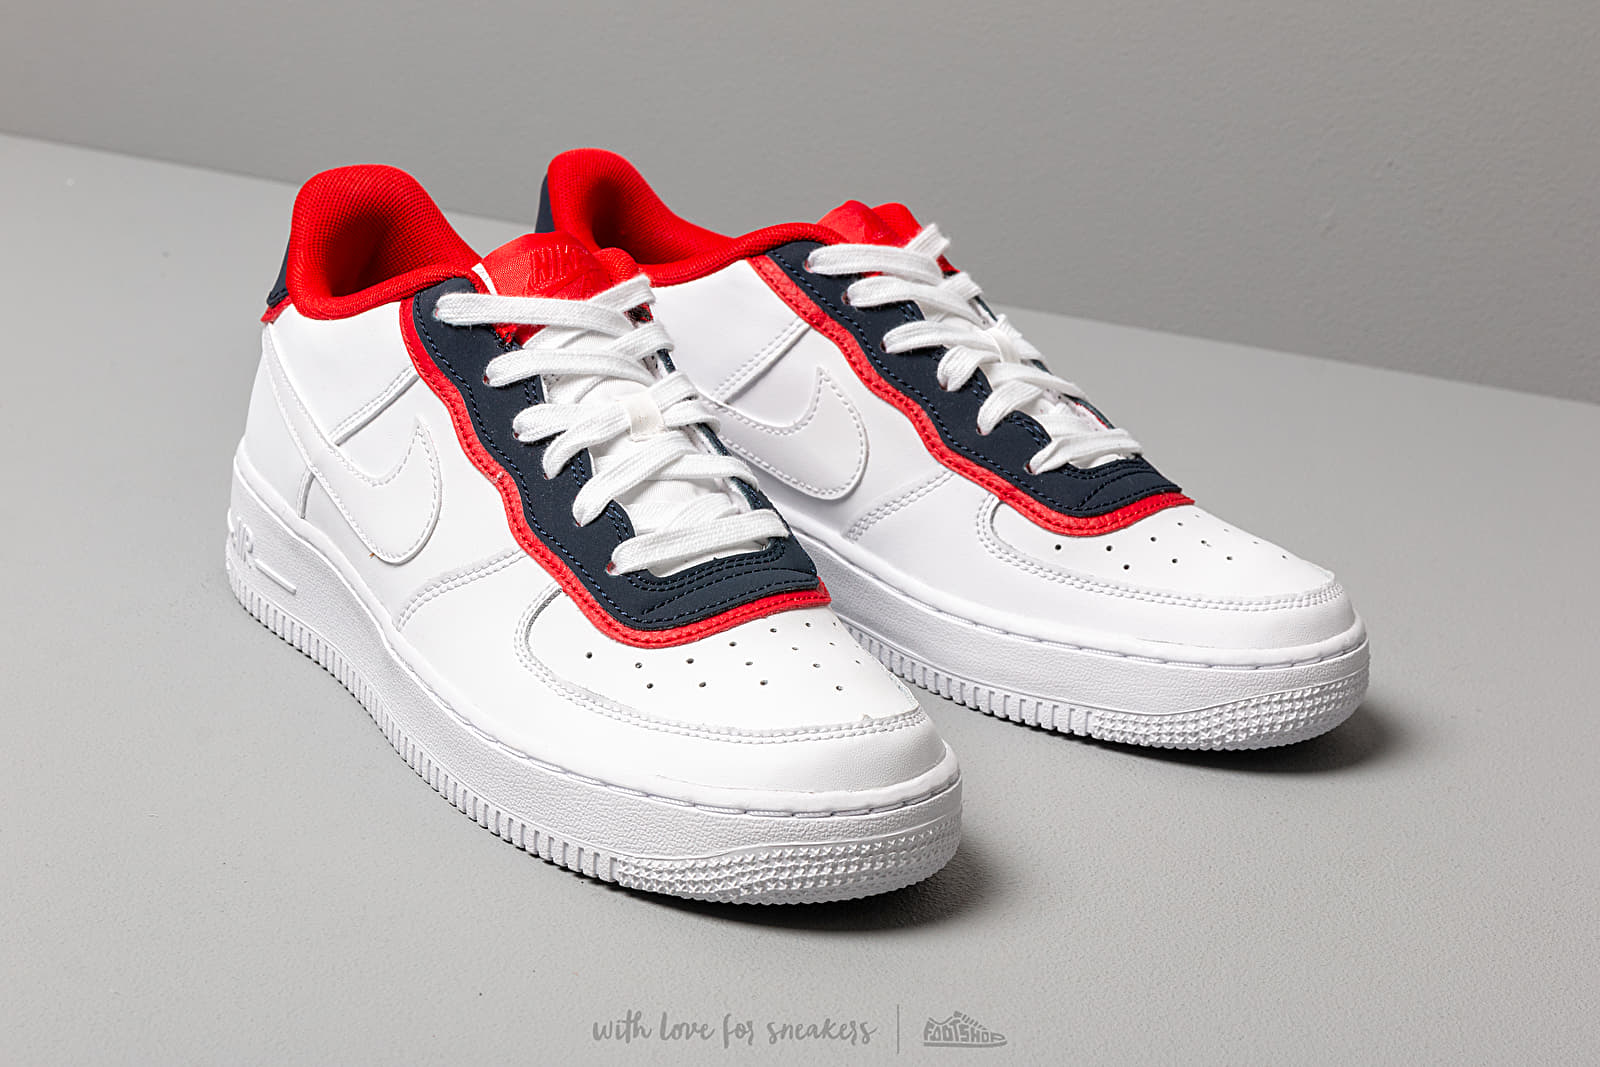 Chaussures NIKE Air Force 1 Lv8 1 Dbl Gs BV1084 101 White